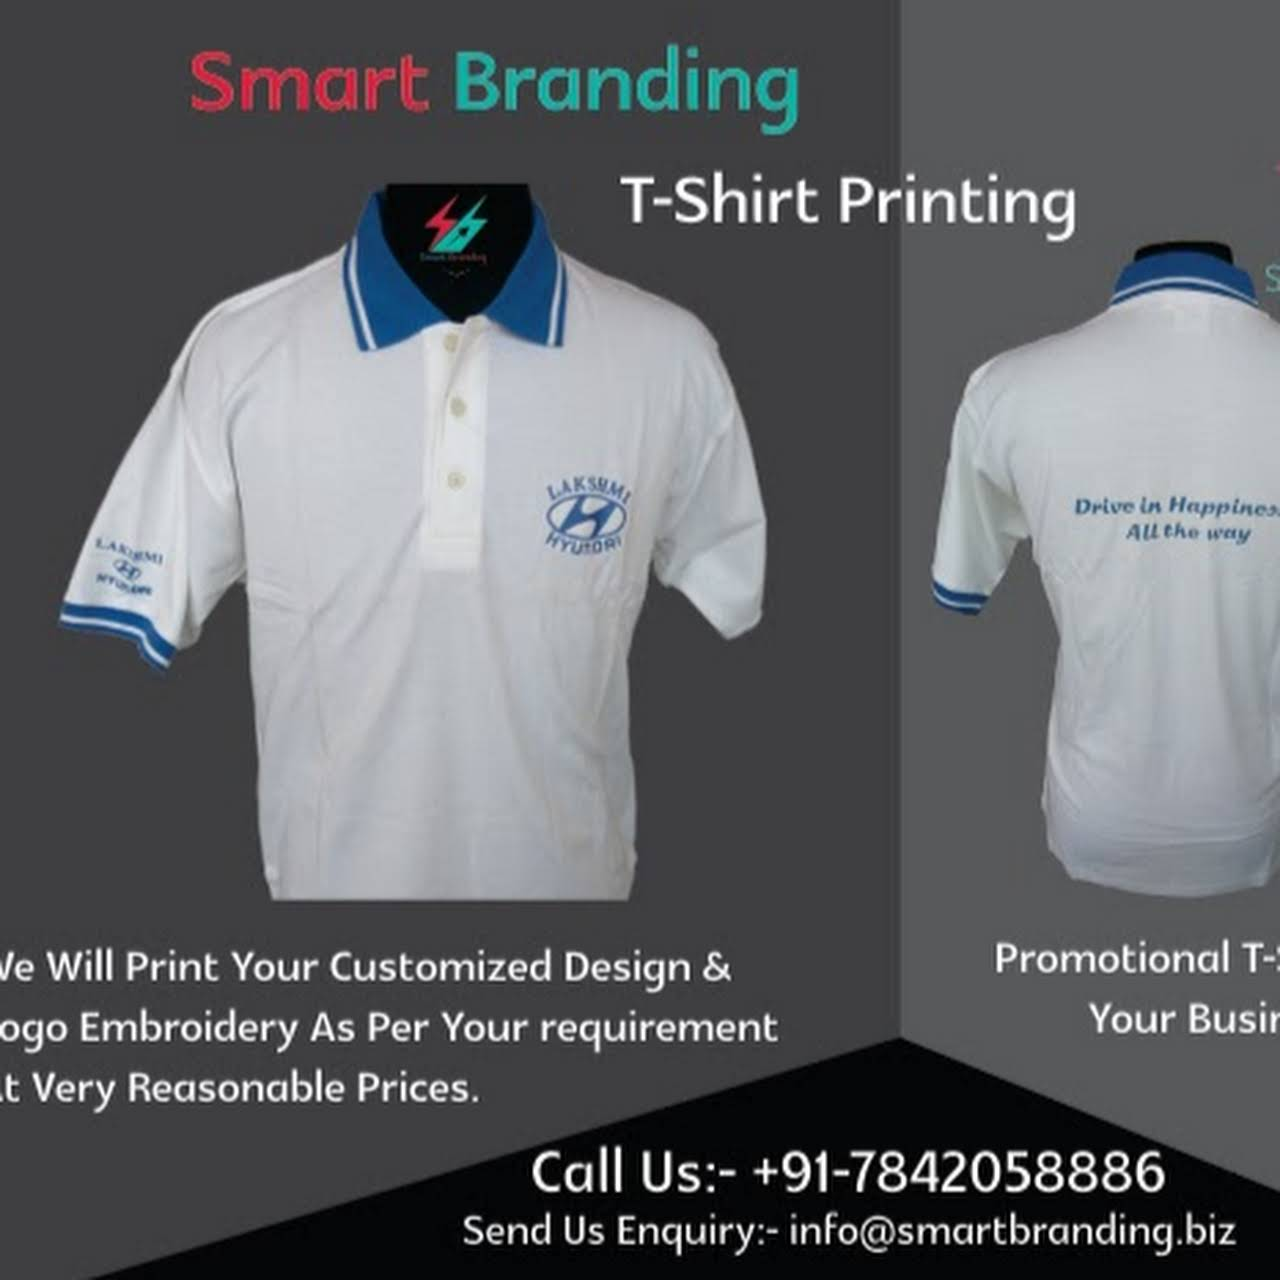 Smart Branding Solutions Corporate Gifts T Shirt Printing T